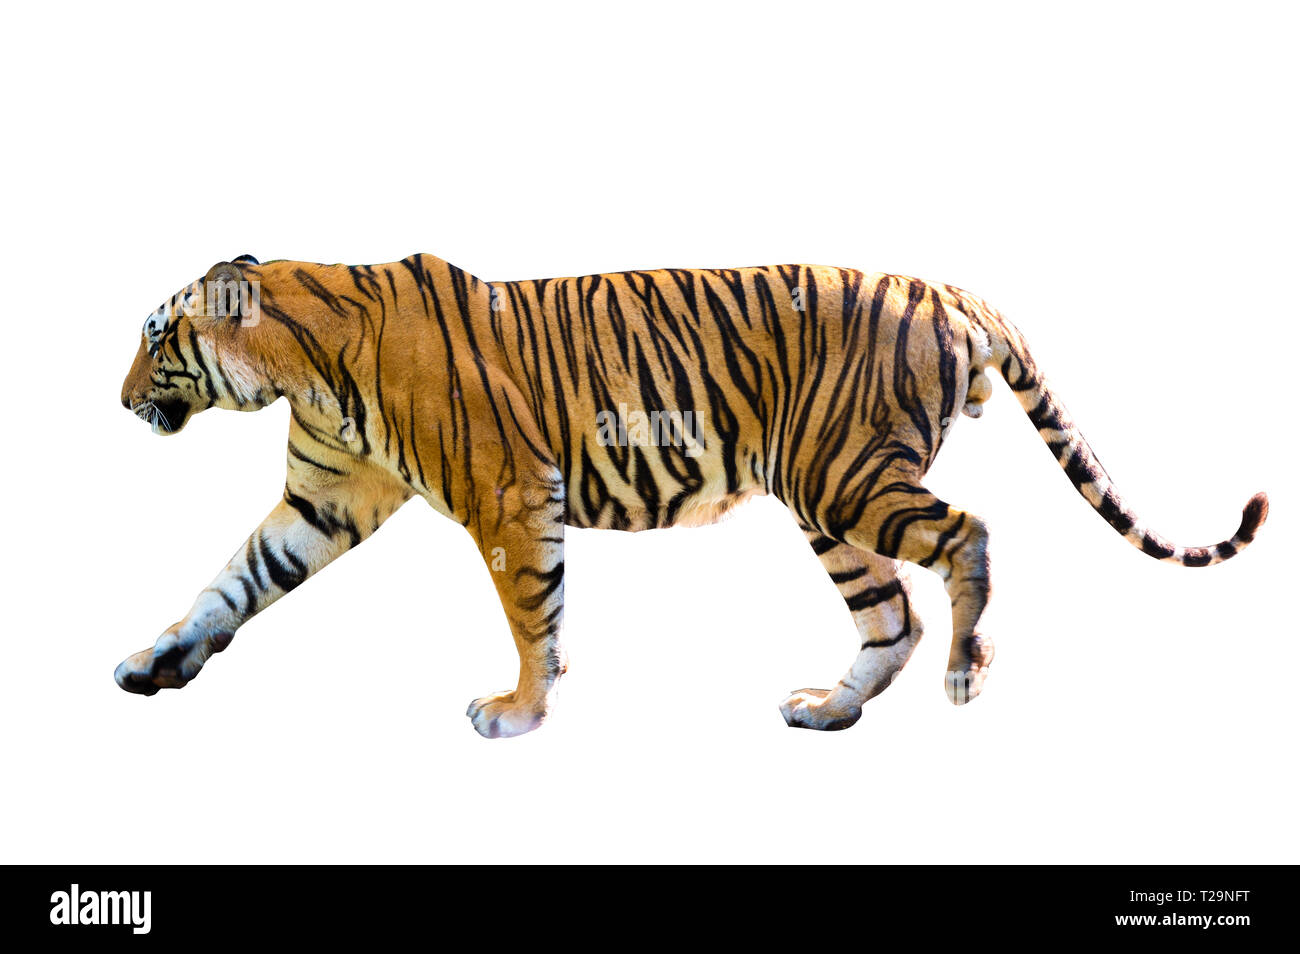 tiger White background Isolate full body - Stock Image